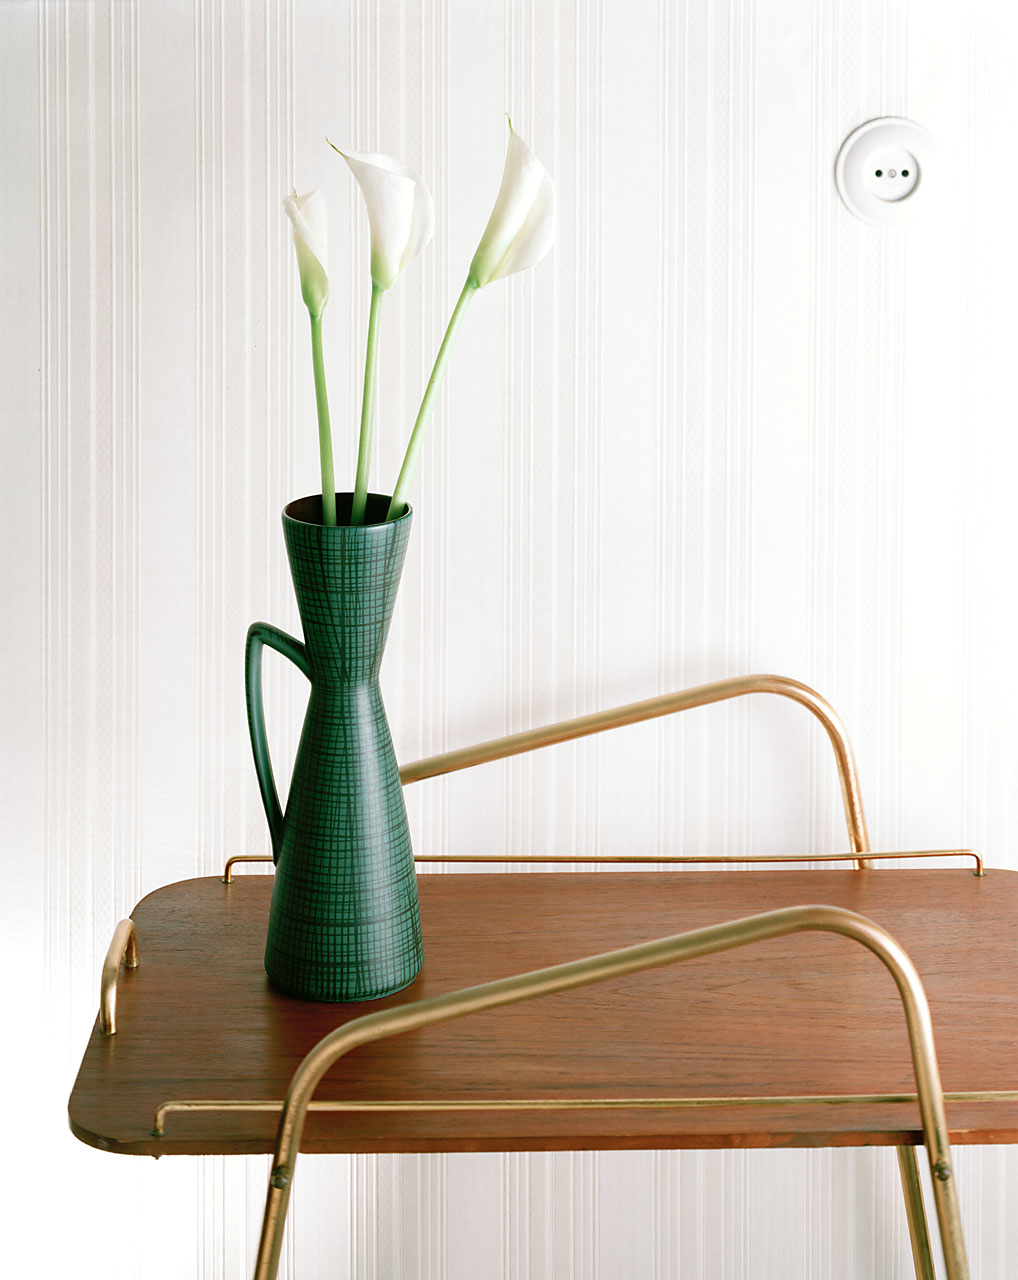 Sabine-Scheer-still-life-photography-calla-vase-tea-trolley-wagon